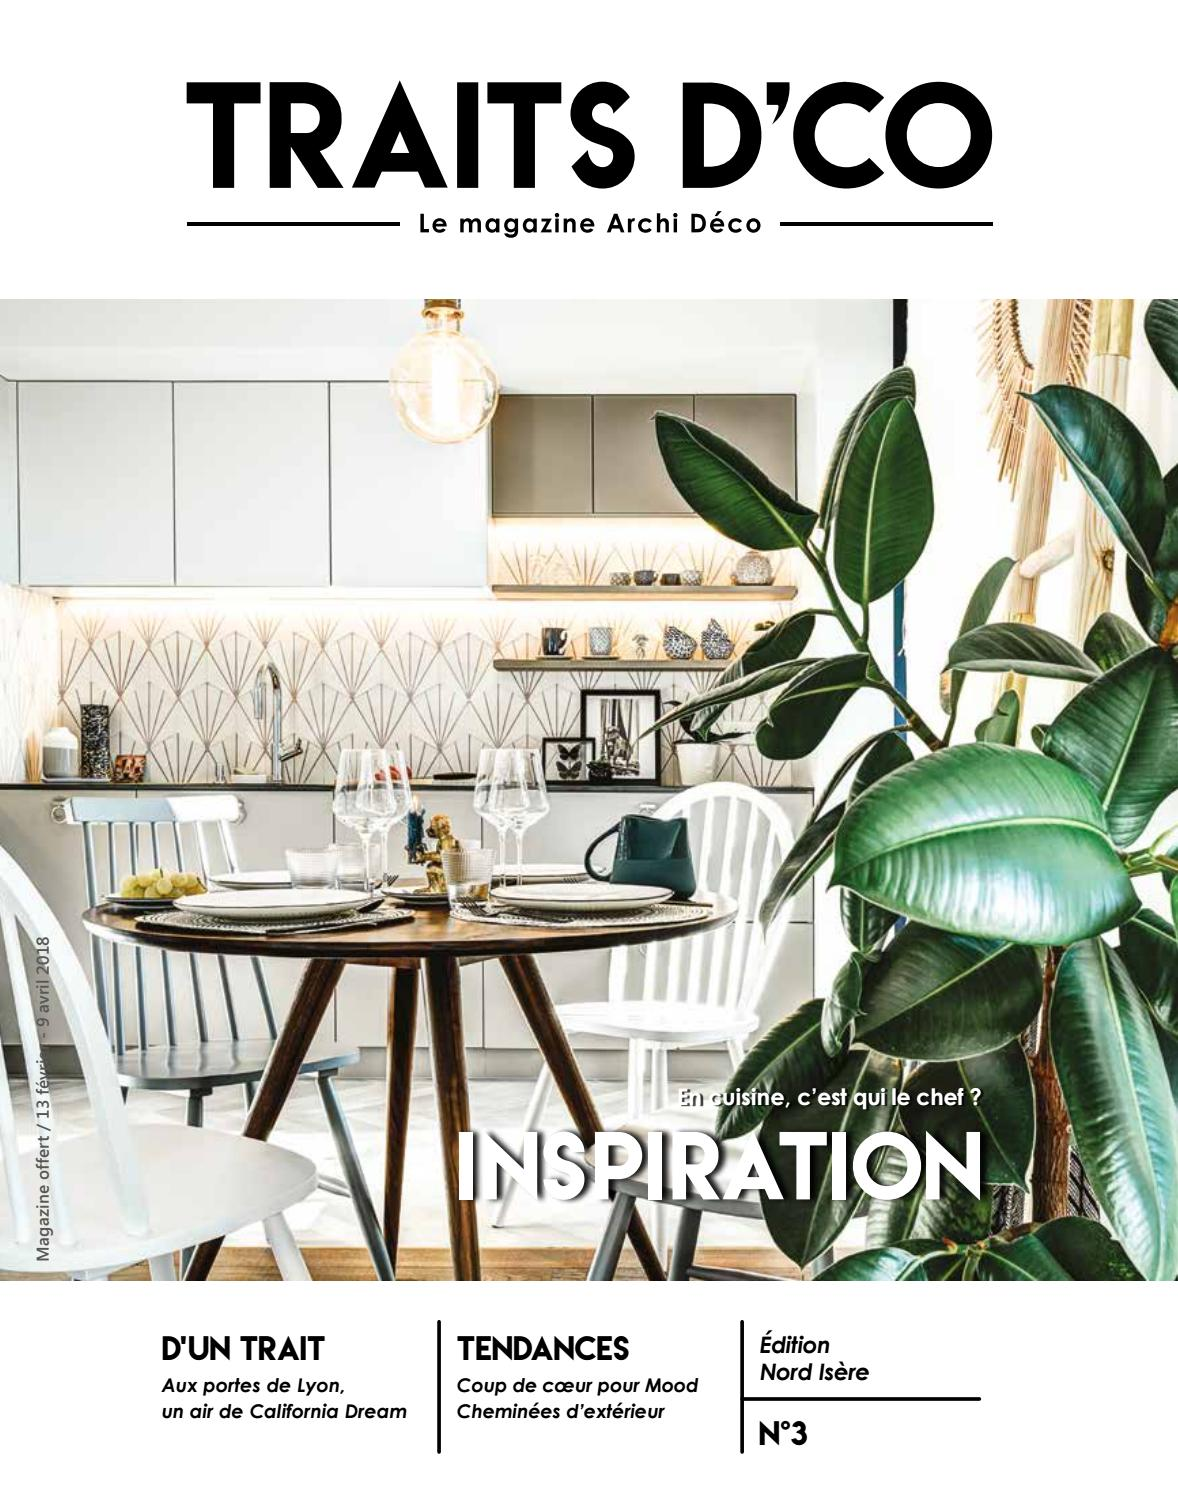 Raits dco magazine nord isère n3 février 2018 by traits dco issuu